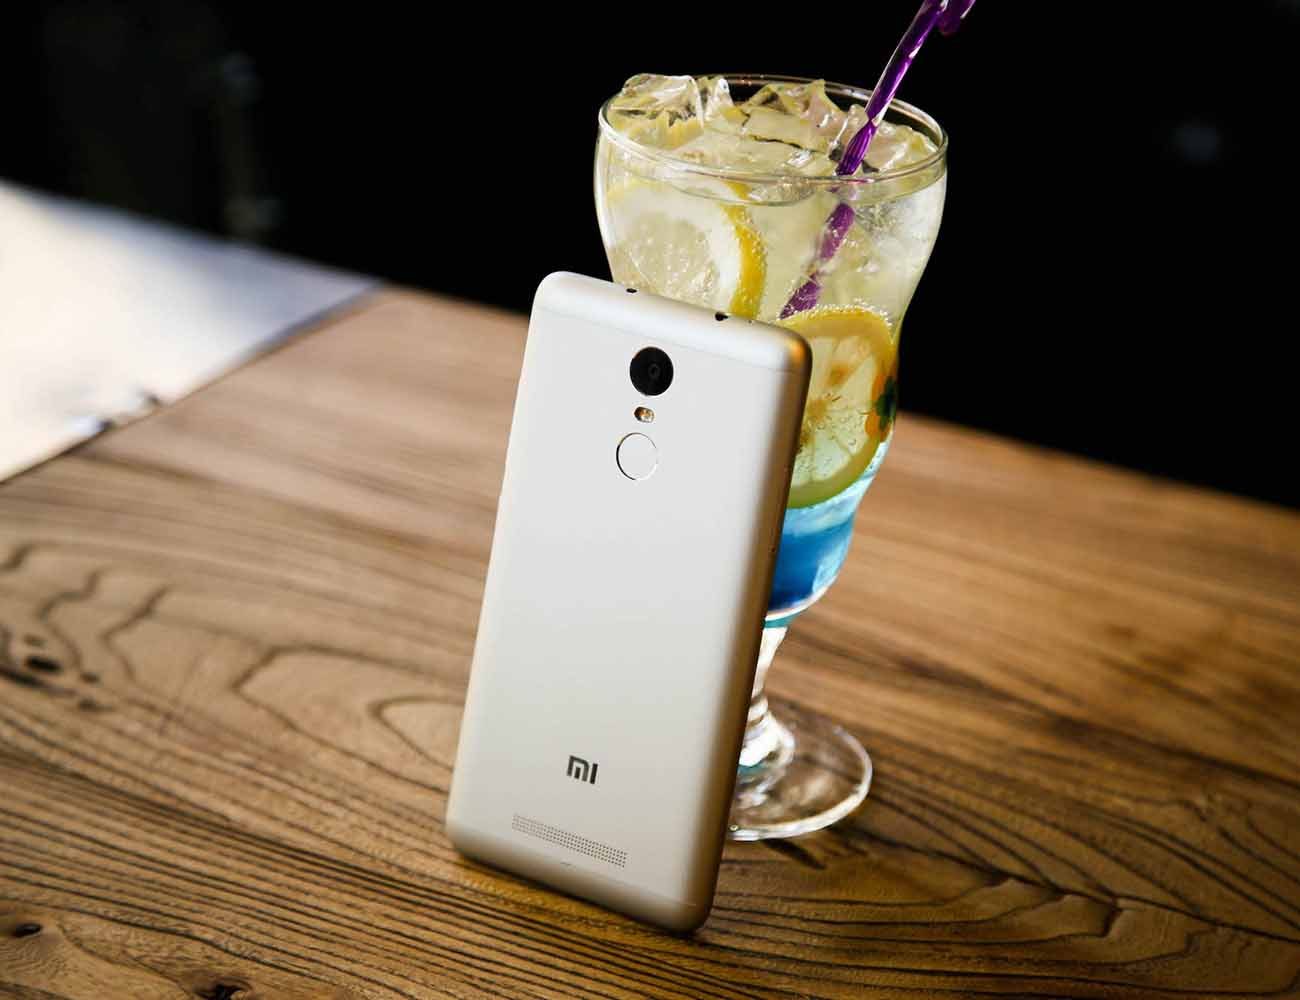 Xiaomi Redmi Note 3 – With Fingerprint Scanner